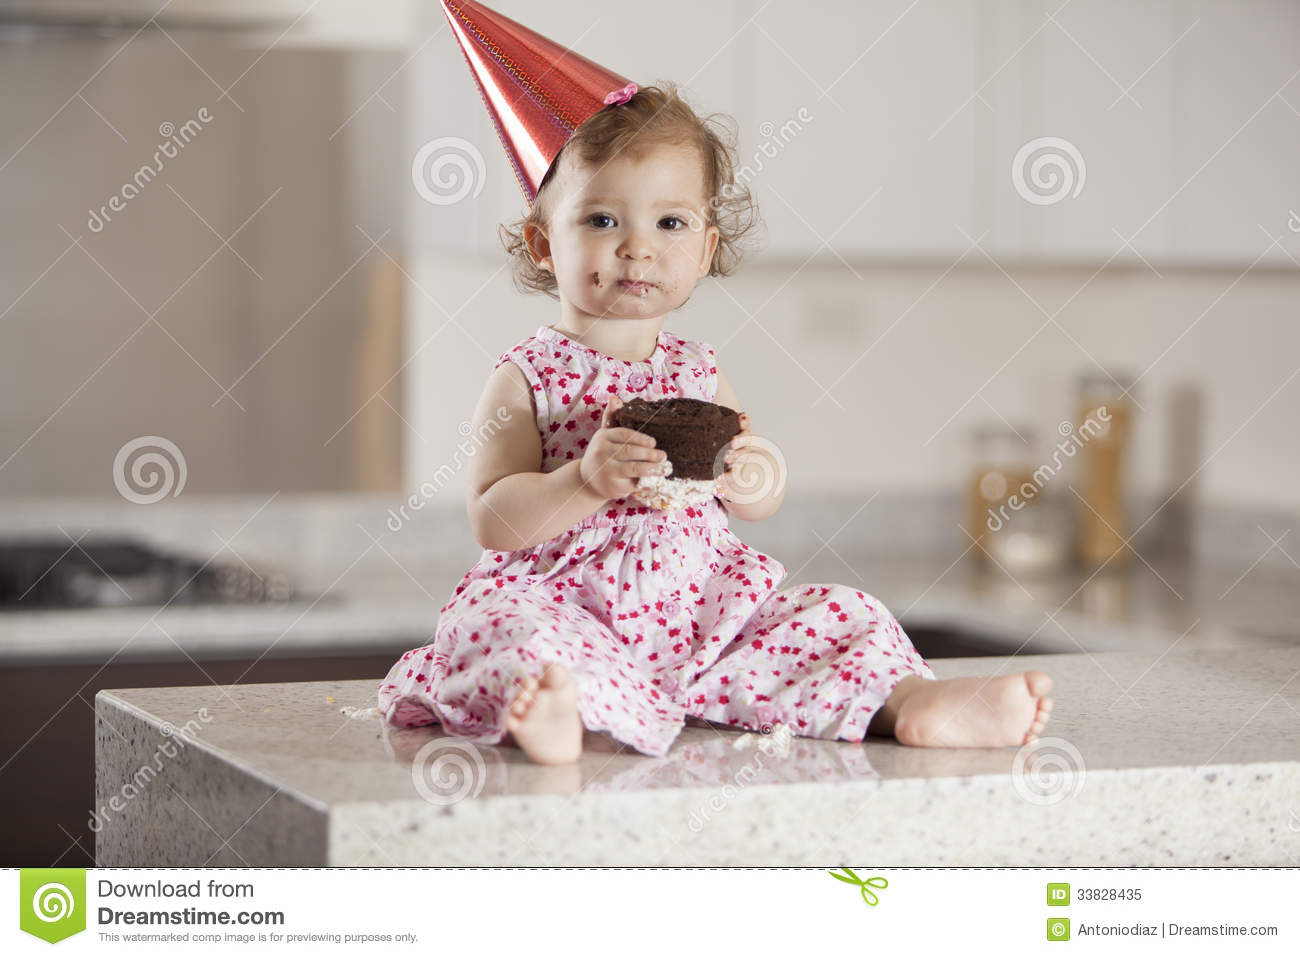 Baby Eating Cake Clipart : Cute Baby Girl Eating Cake Royalty Free Stock Photo ...